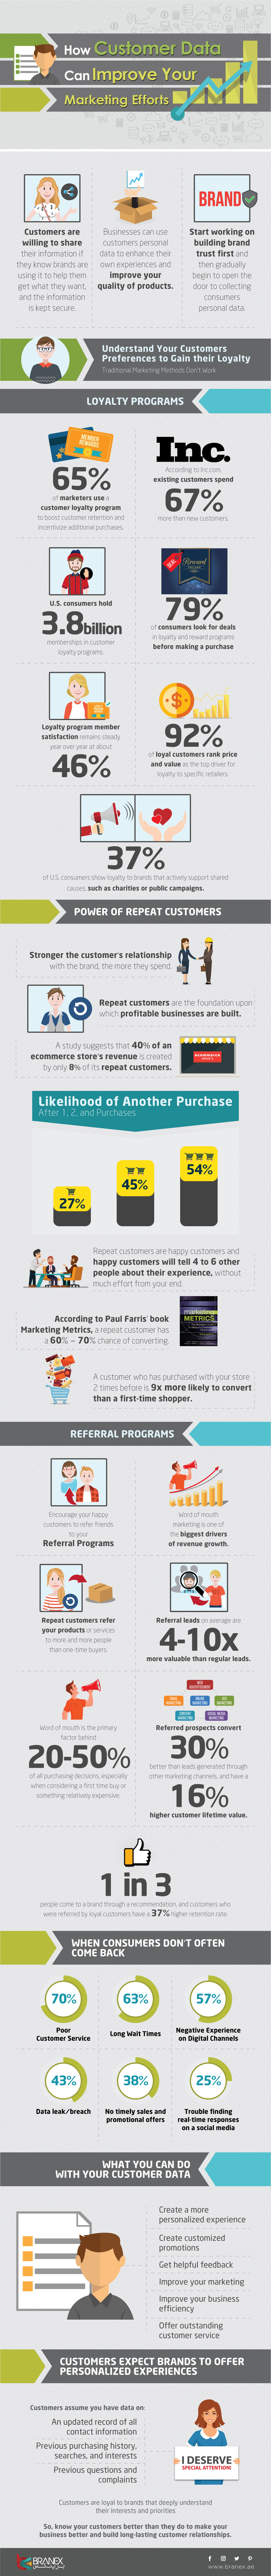 How-Customer-Data-Can-Improve-Your-Marketing-Efforts (2)